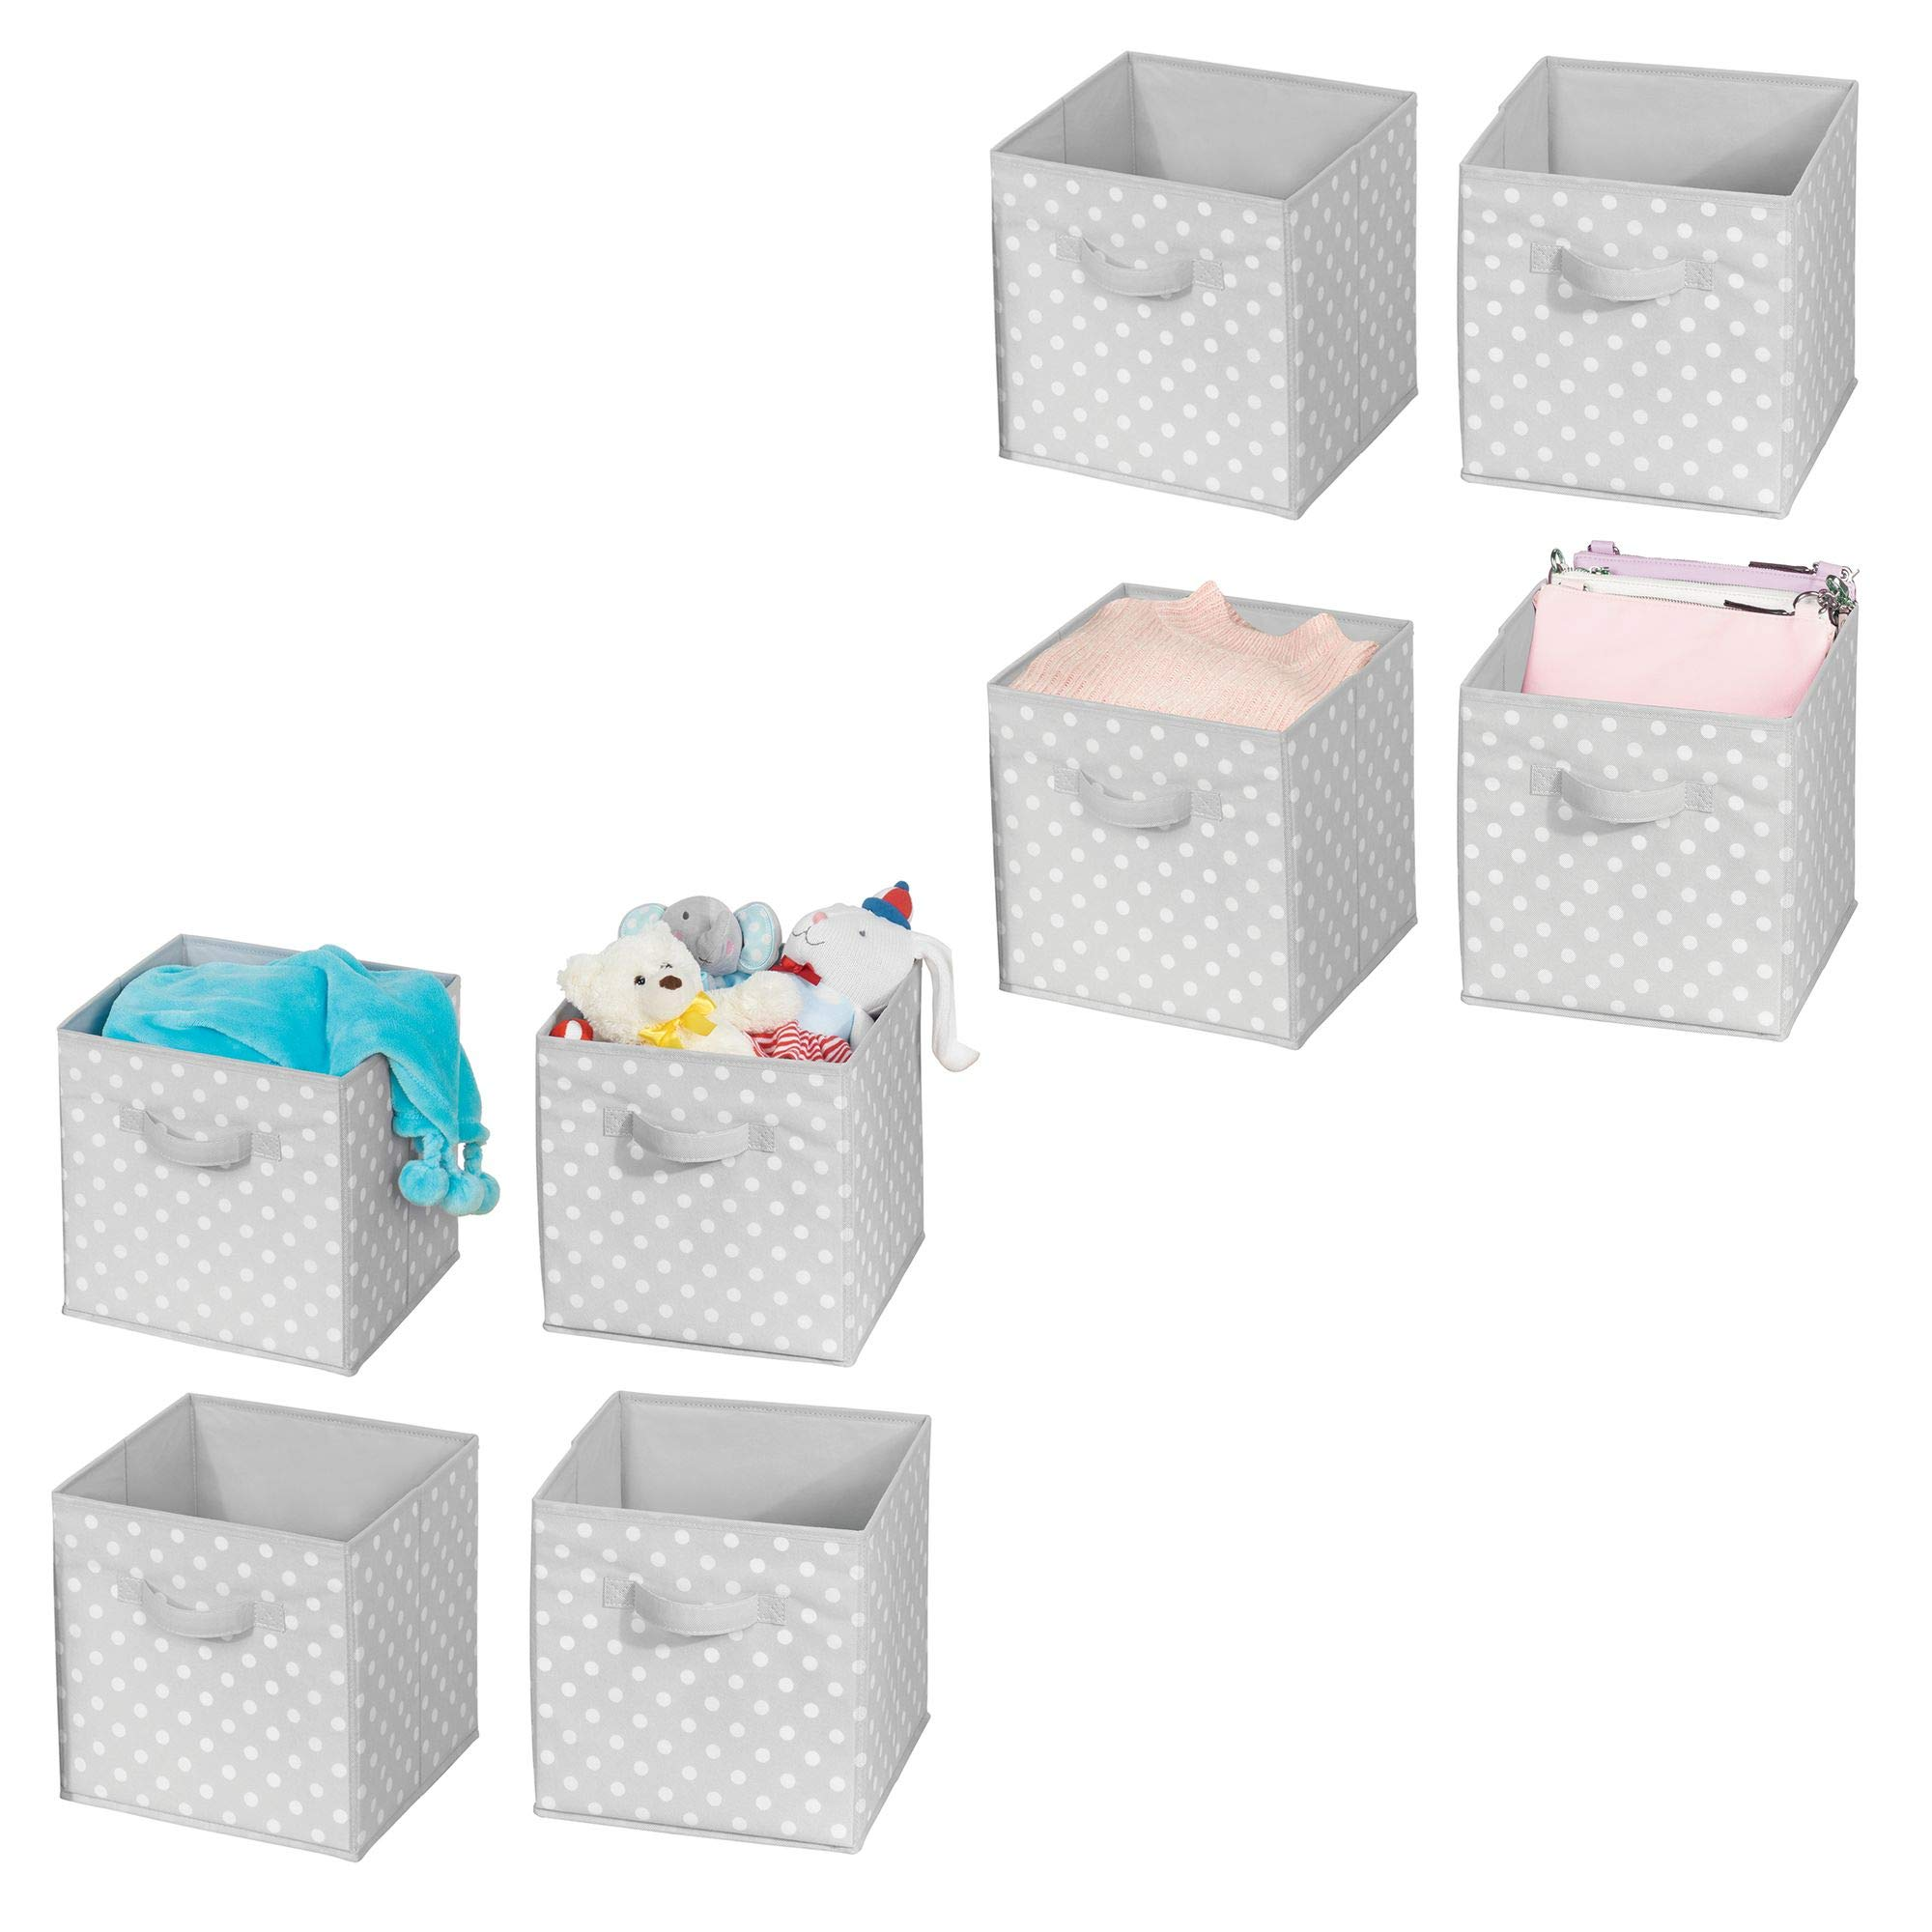 mDesign Soft Fabric Closet Organizer Bin Box - Front Handle - Cube Storage for Child/Kids Room, Nursery, Toy Room, Furniture Organization - 10.5'' high - 8 Pack, Gray with White Polka Dots